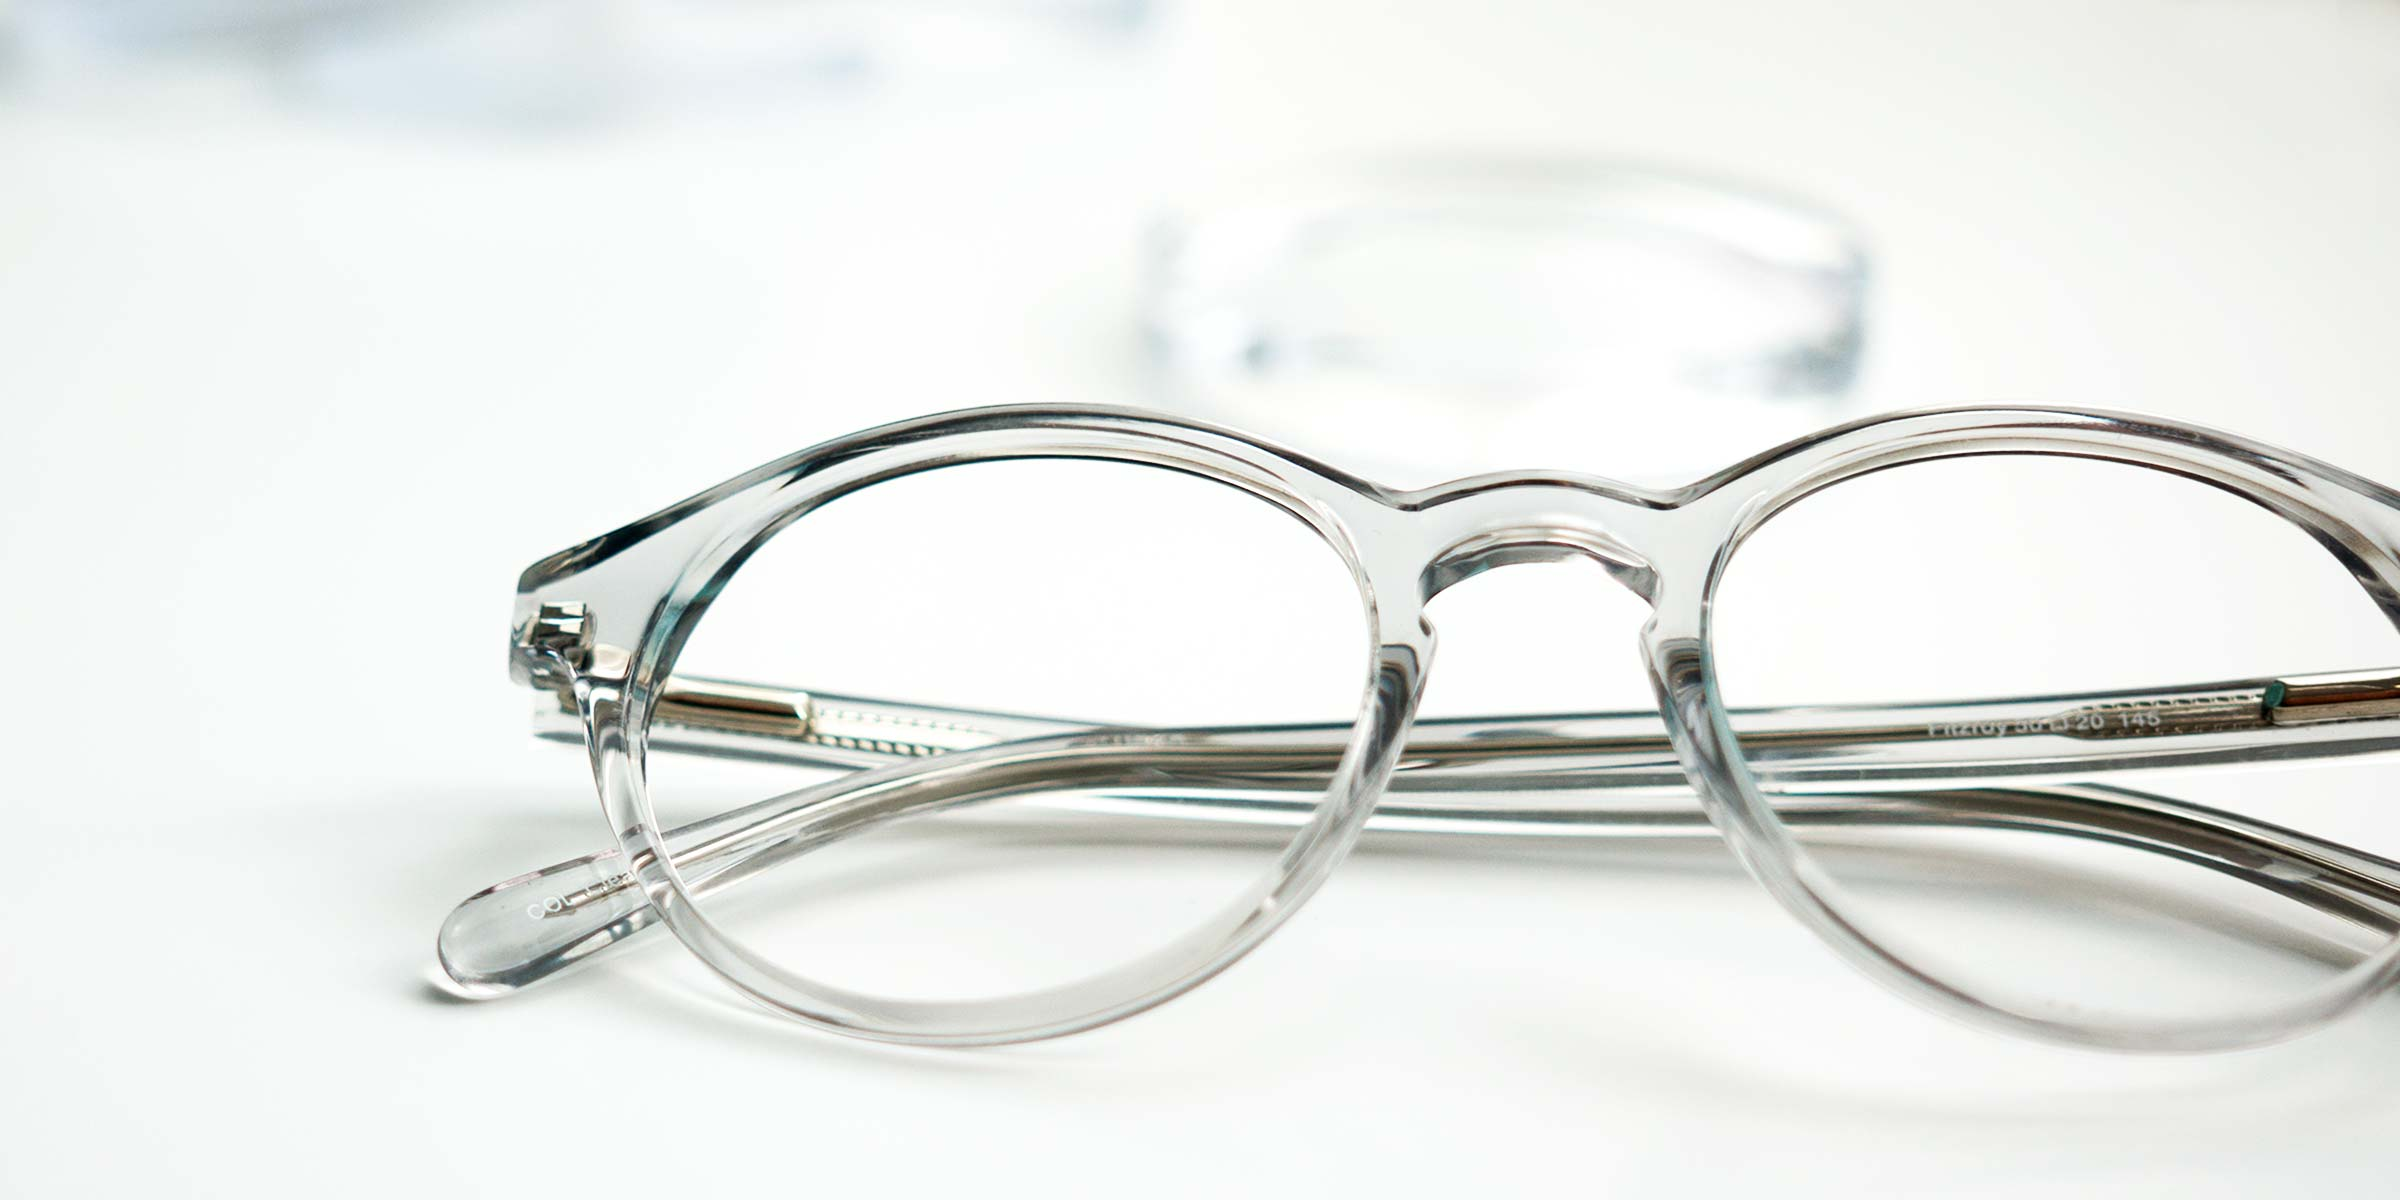 A transparent glasses frame